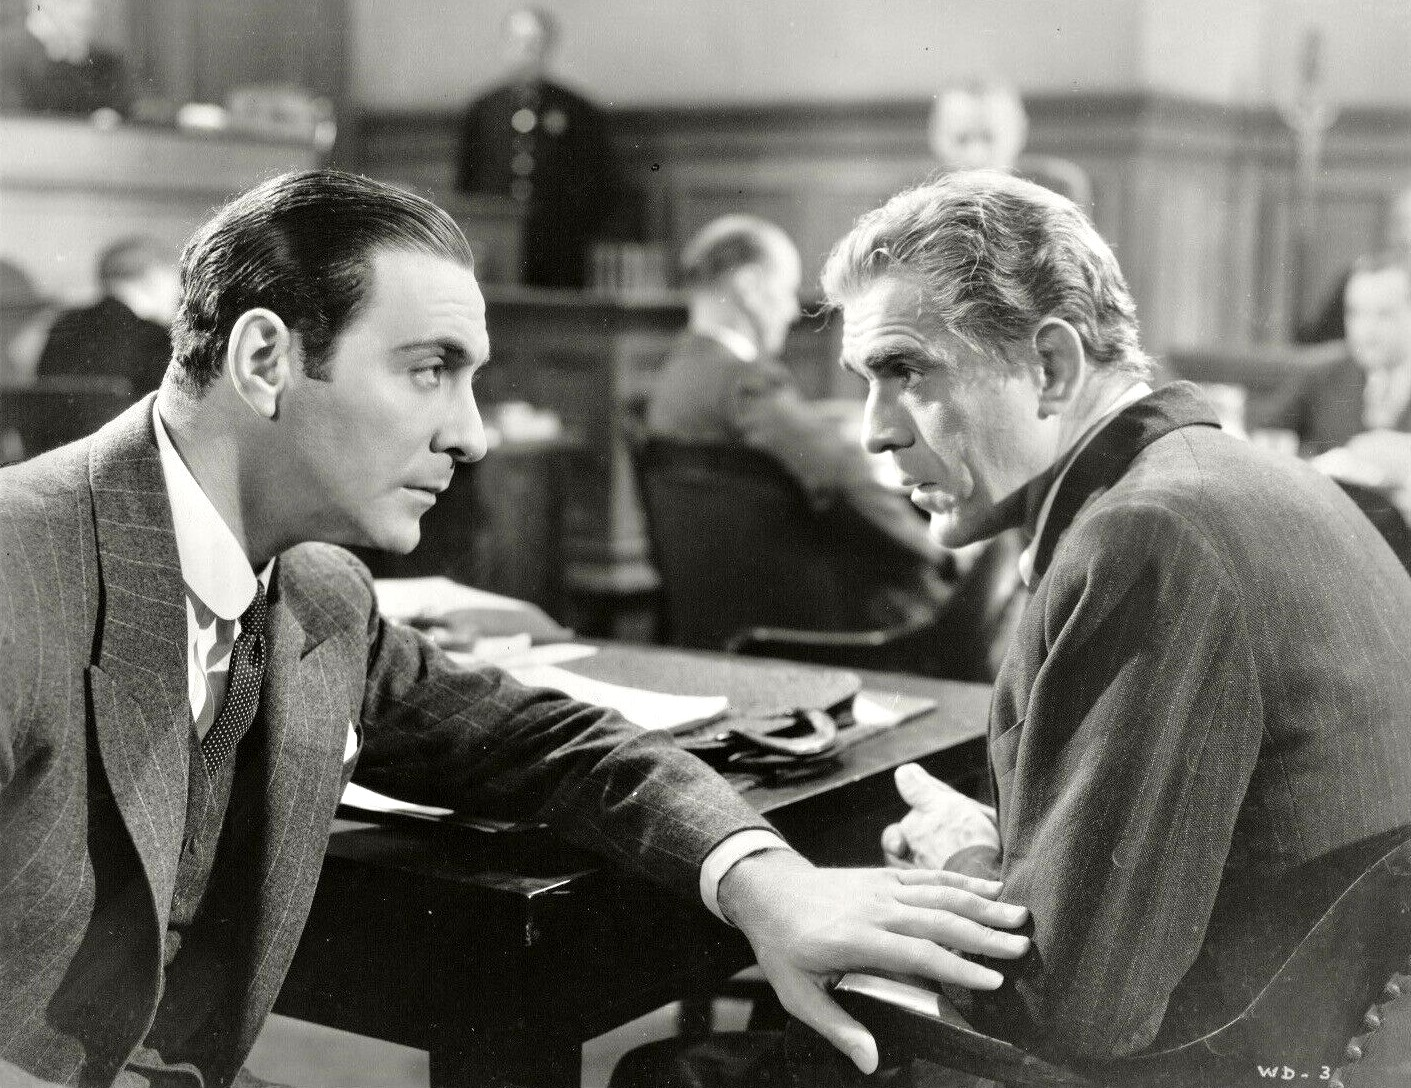 Boris Karloff and Ricardo Cortez in The Walking Dead (1936)